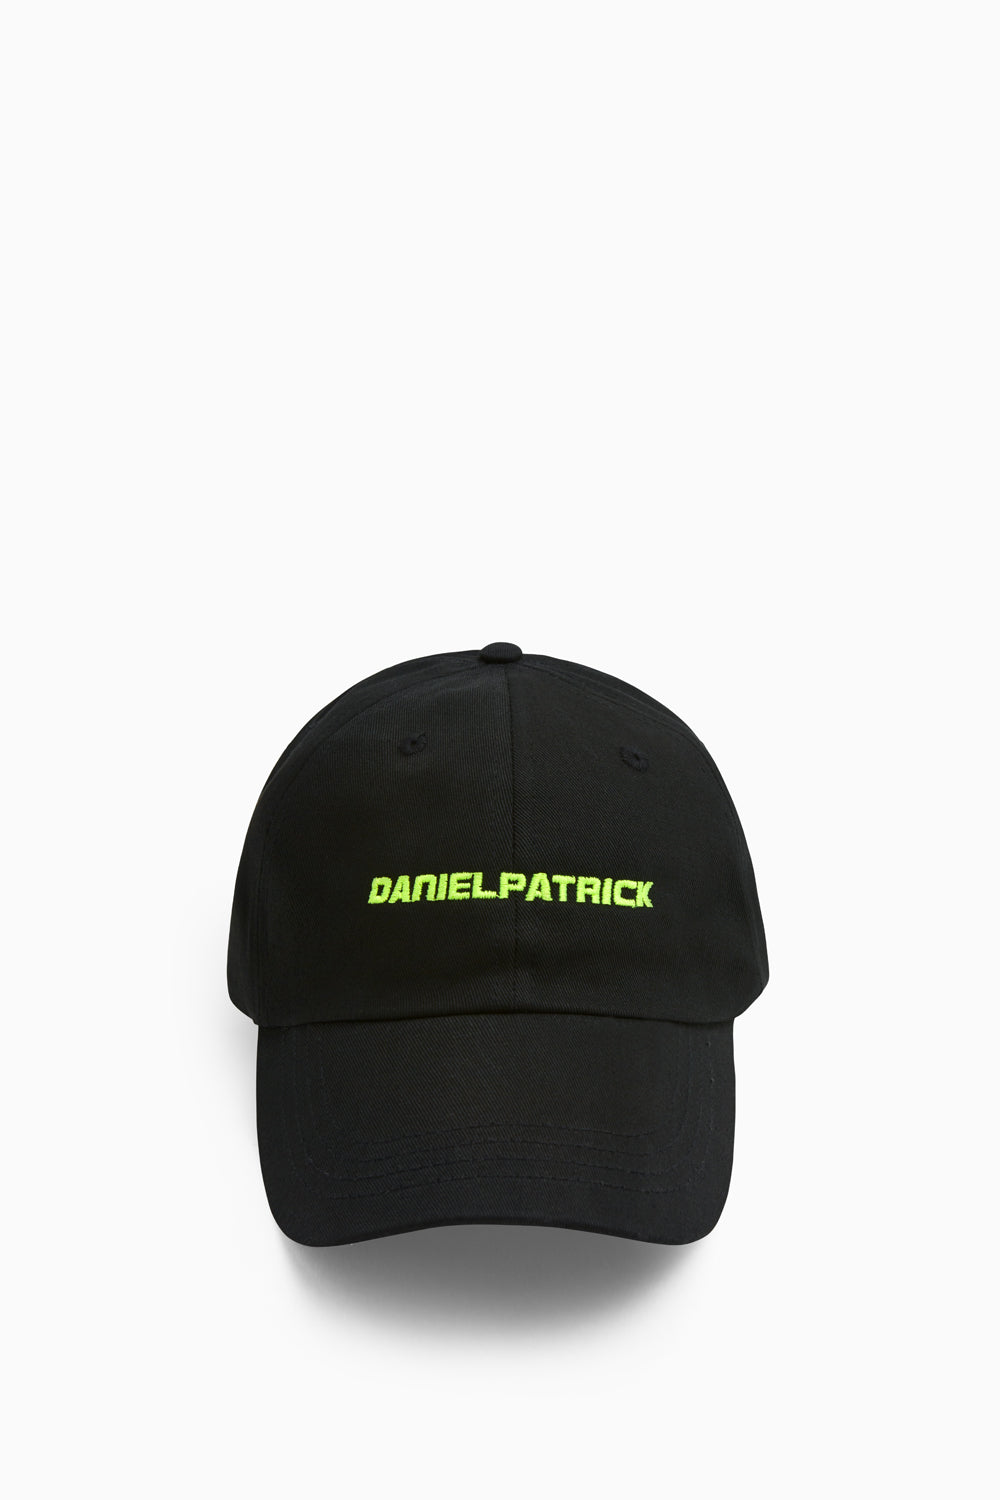 DP sport cap in black/lime by daniel patrick